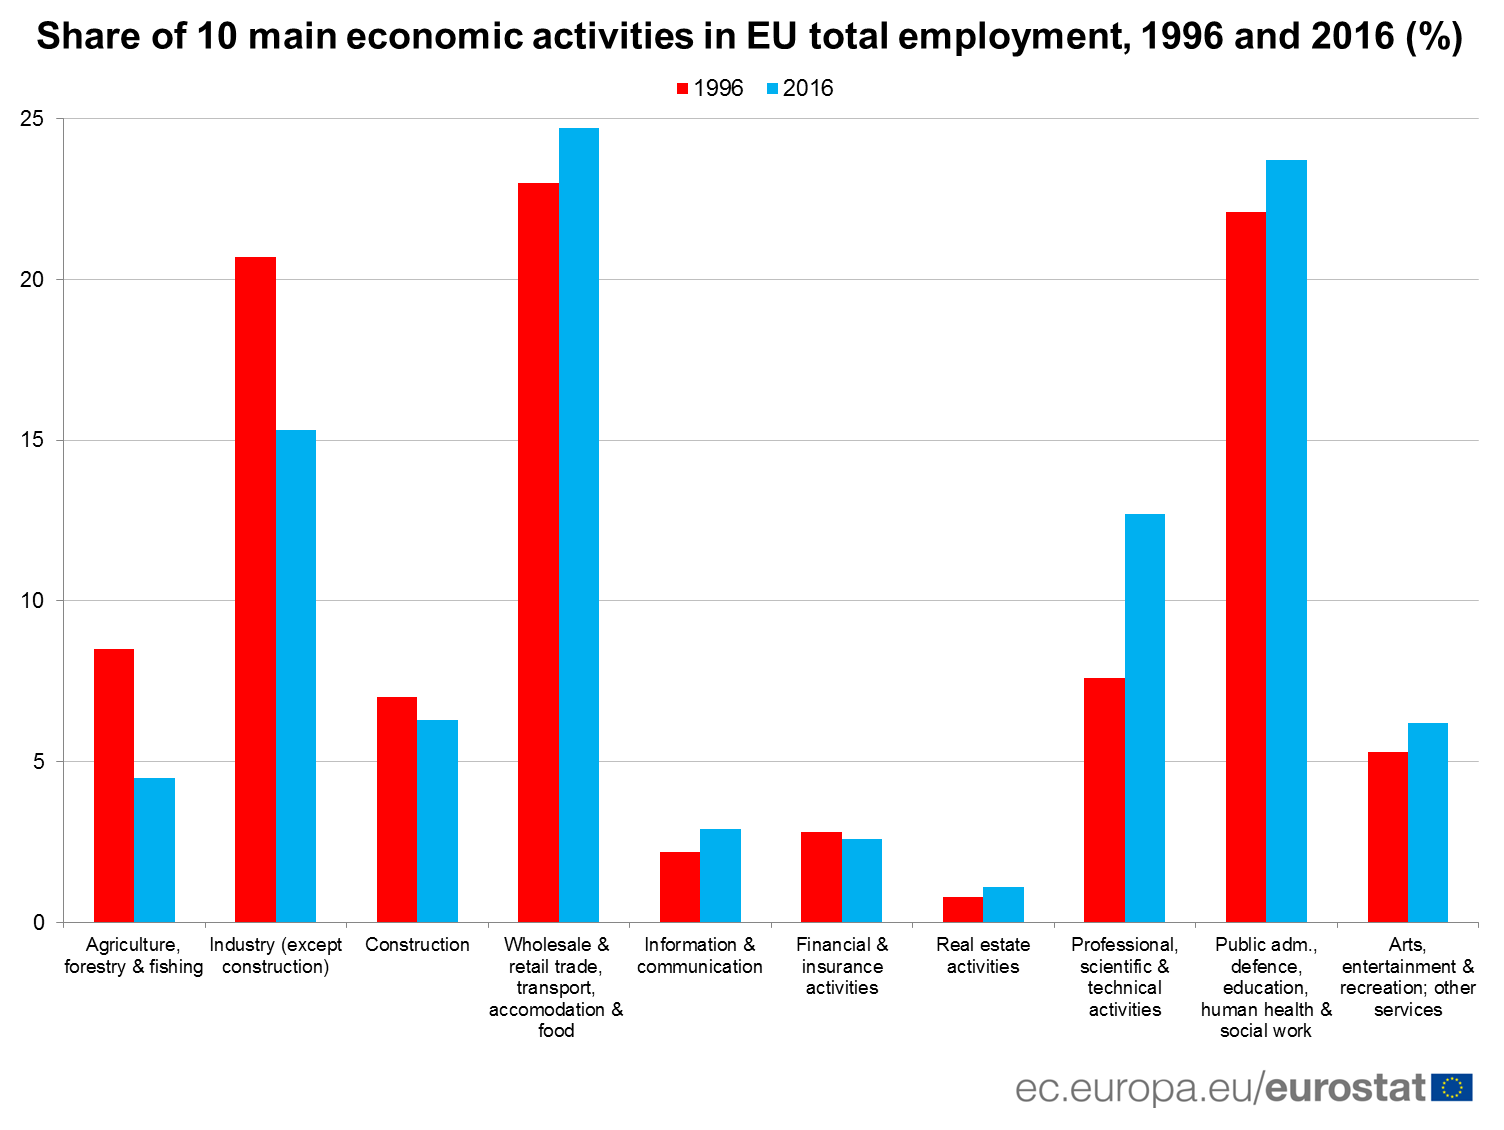 Share of 10 main economic activities in the EU total employment, 1996 and 2016 (%)